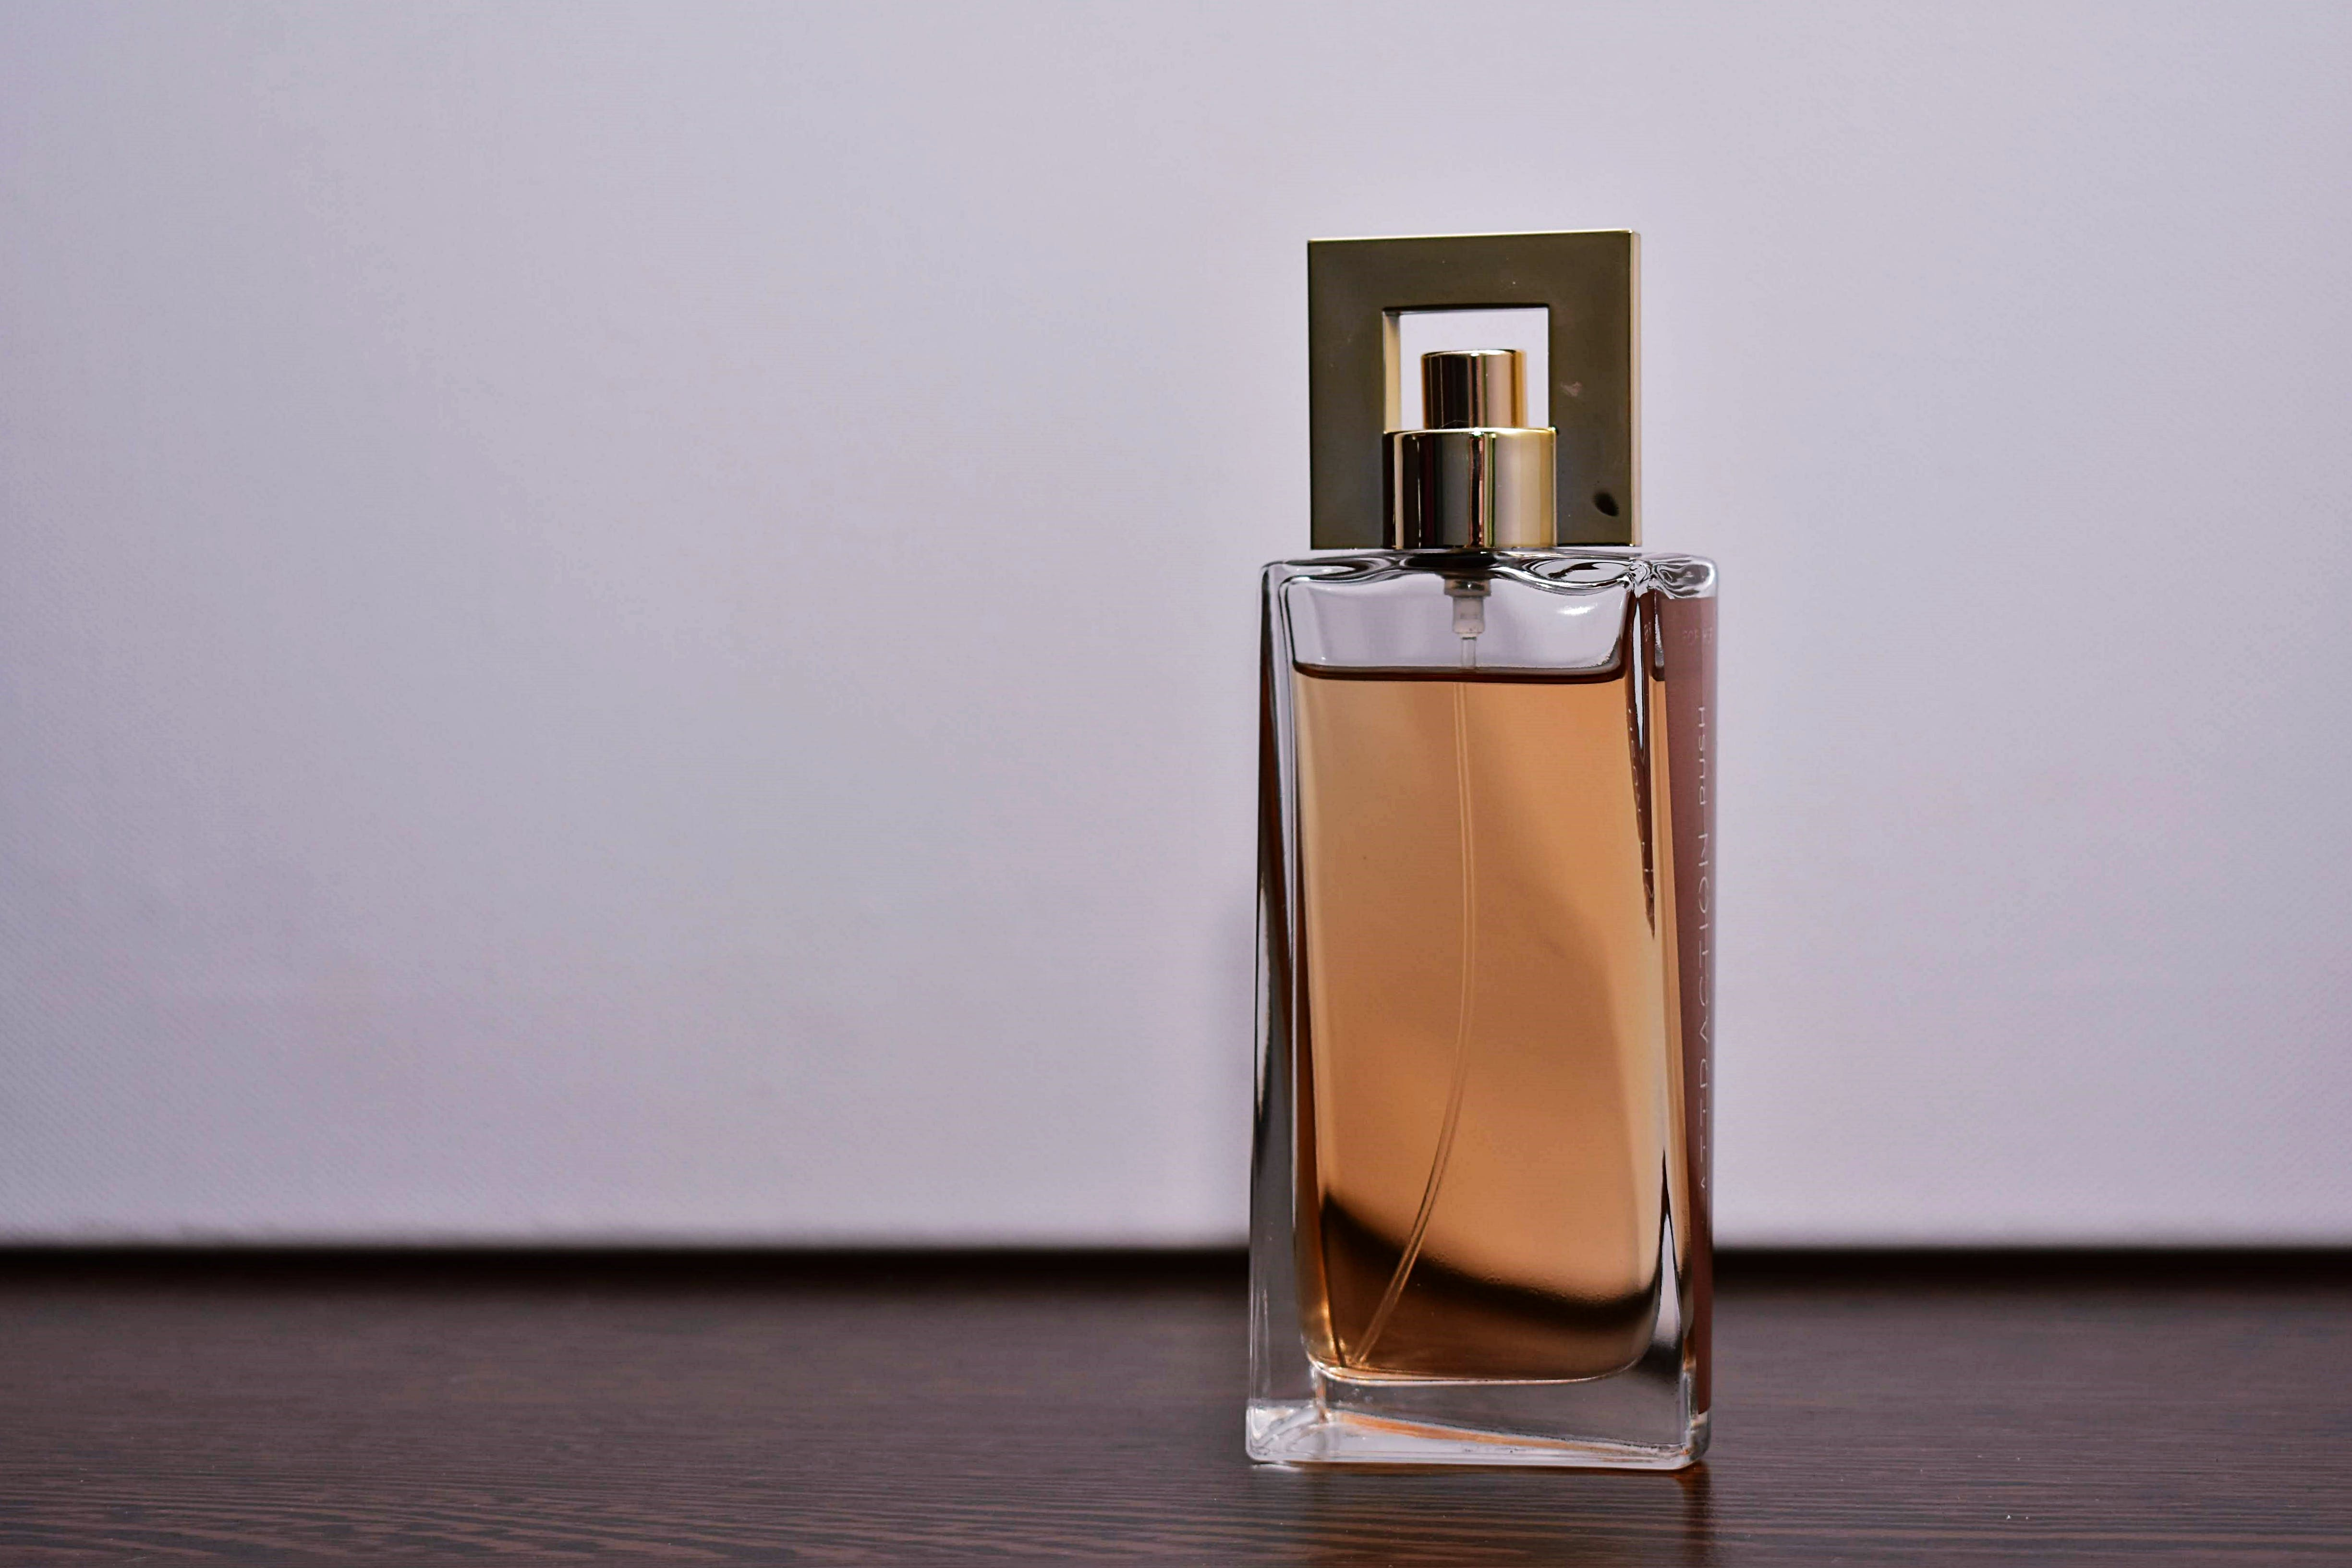 Close-Up Photo of Perfume Bottle